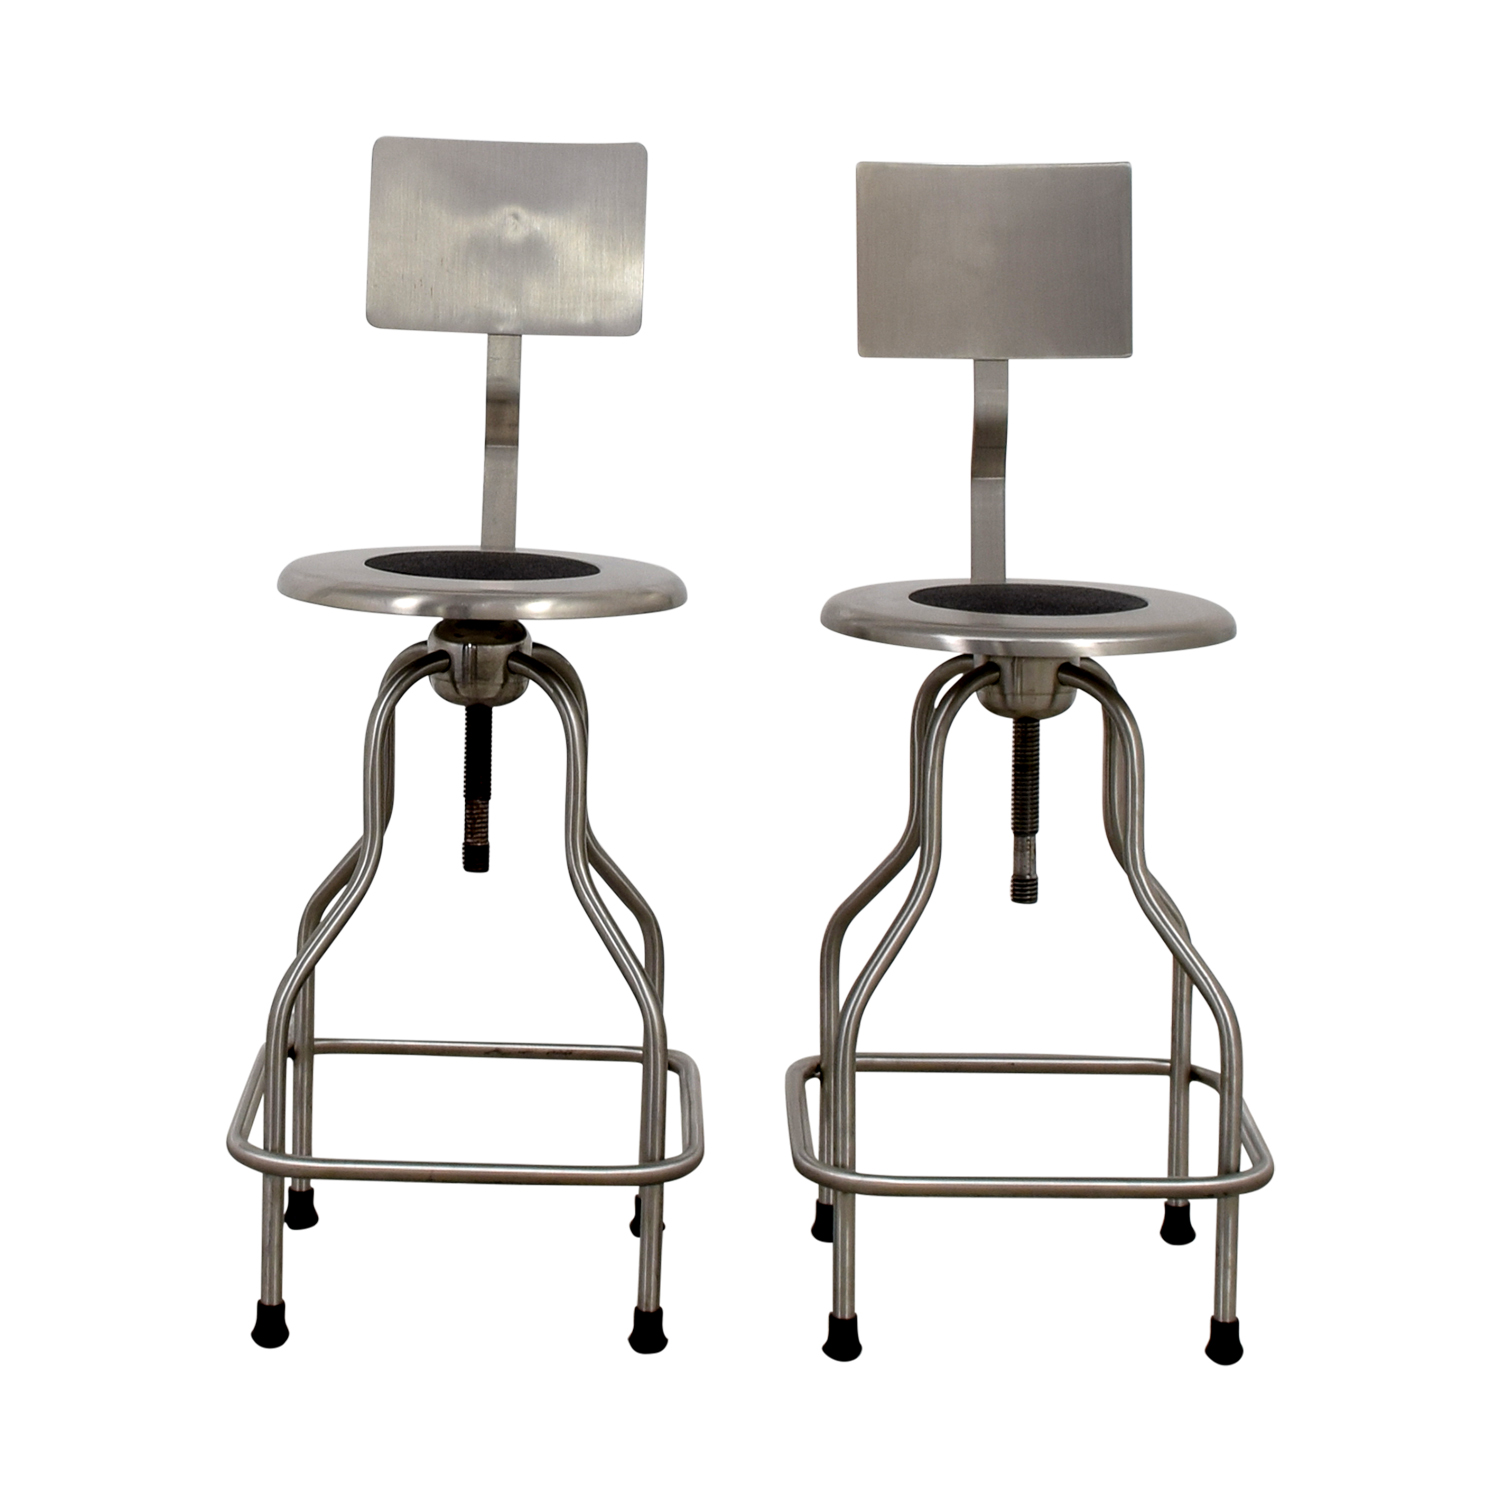 67 off design within reach design within reach steel precision stools with back rest chairs